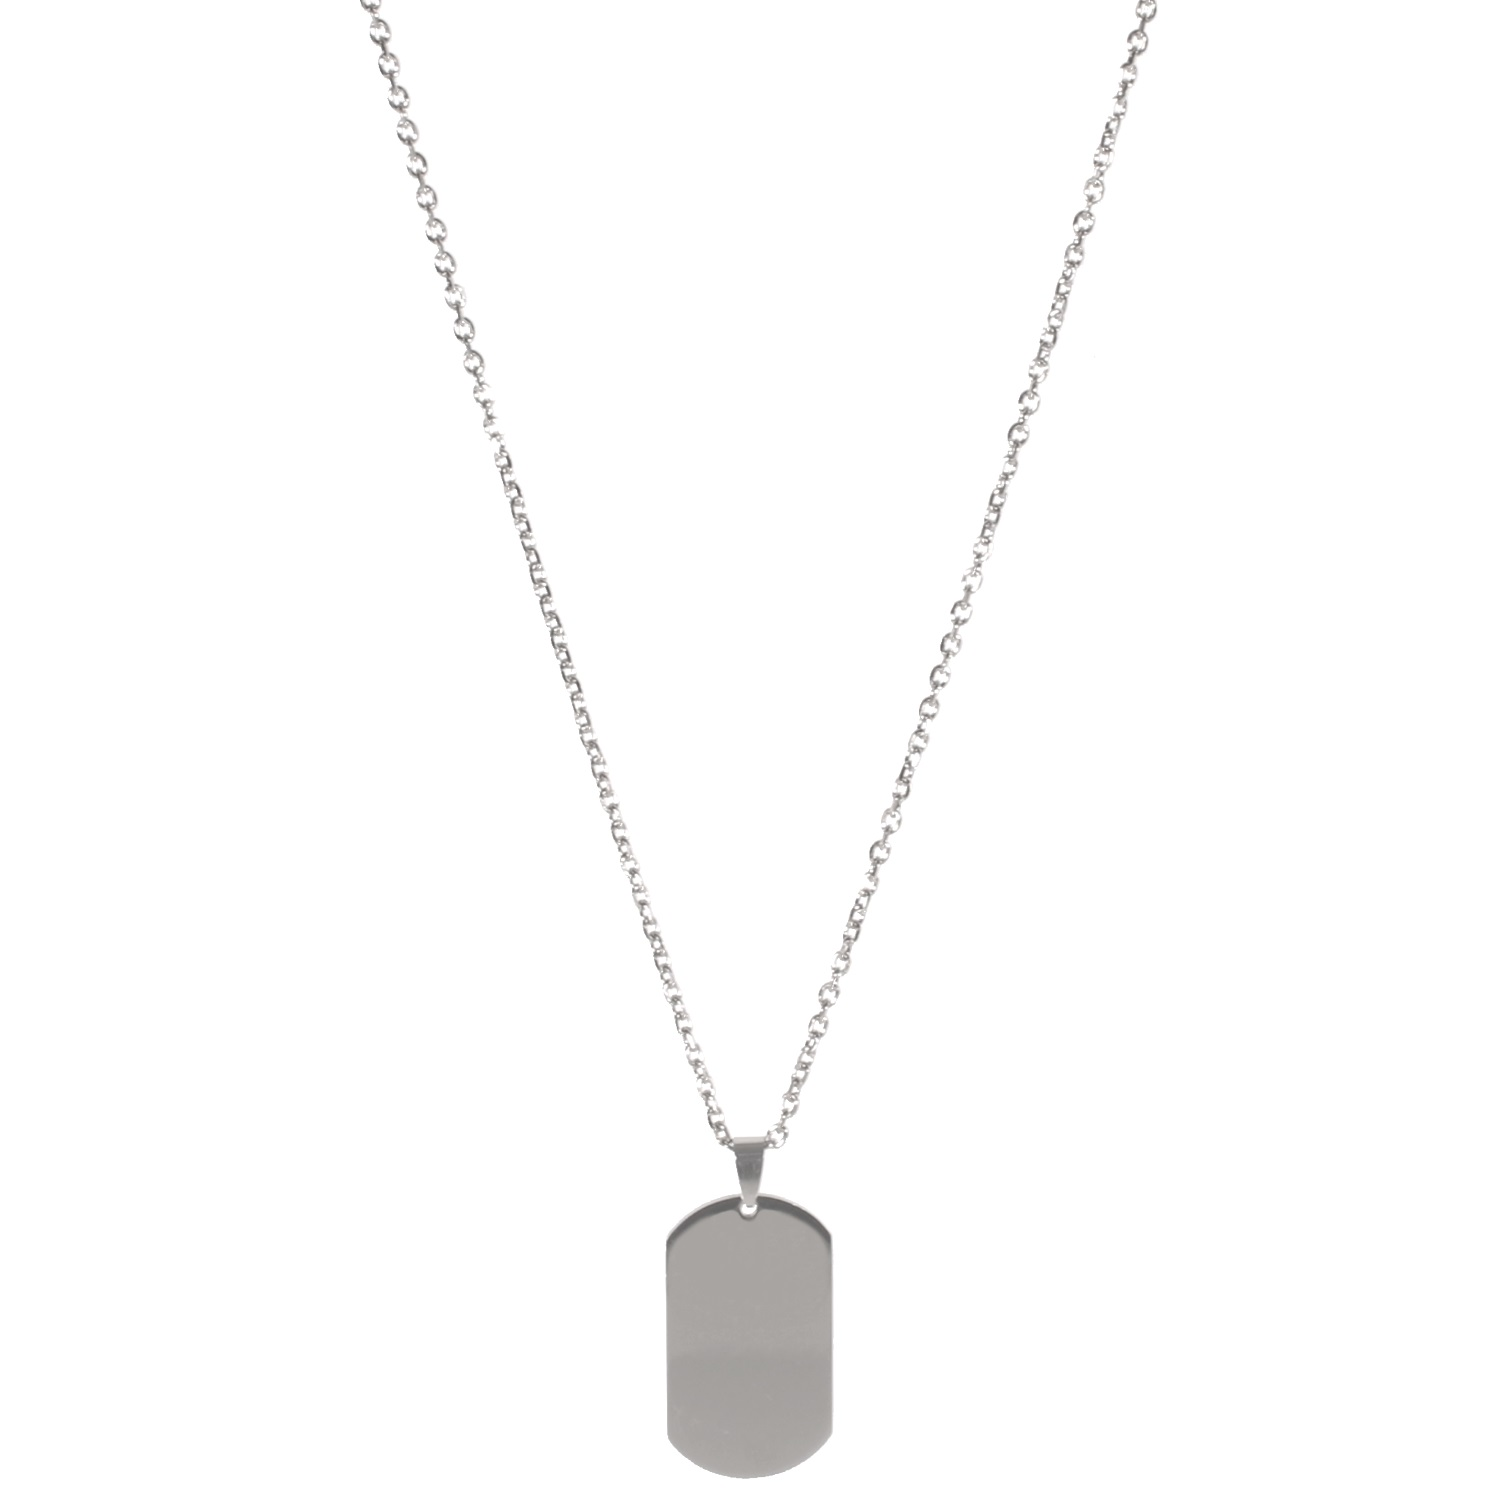 collier homme gravure photo